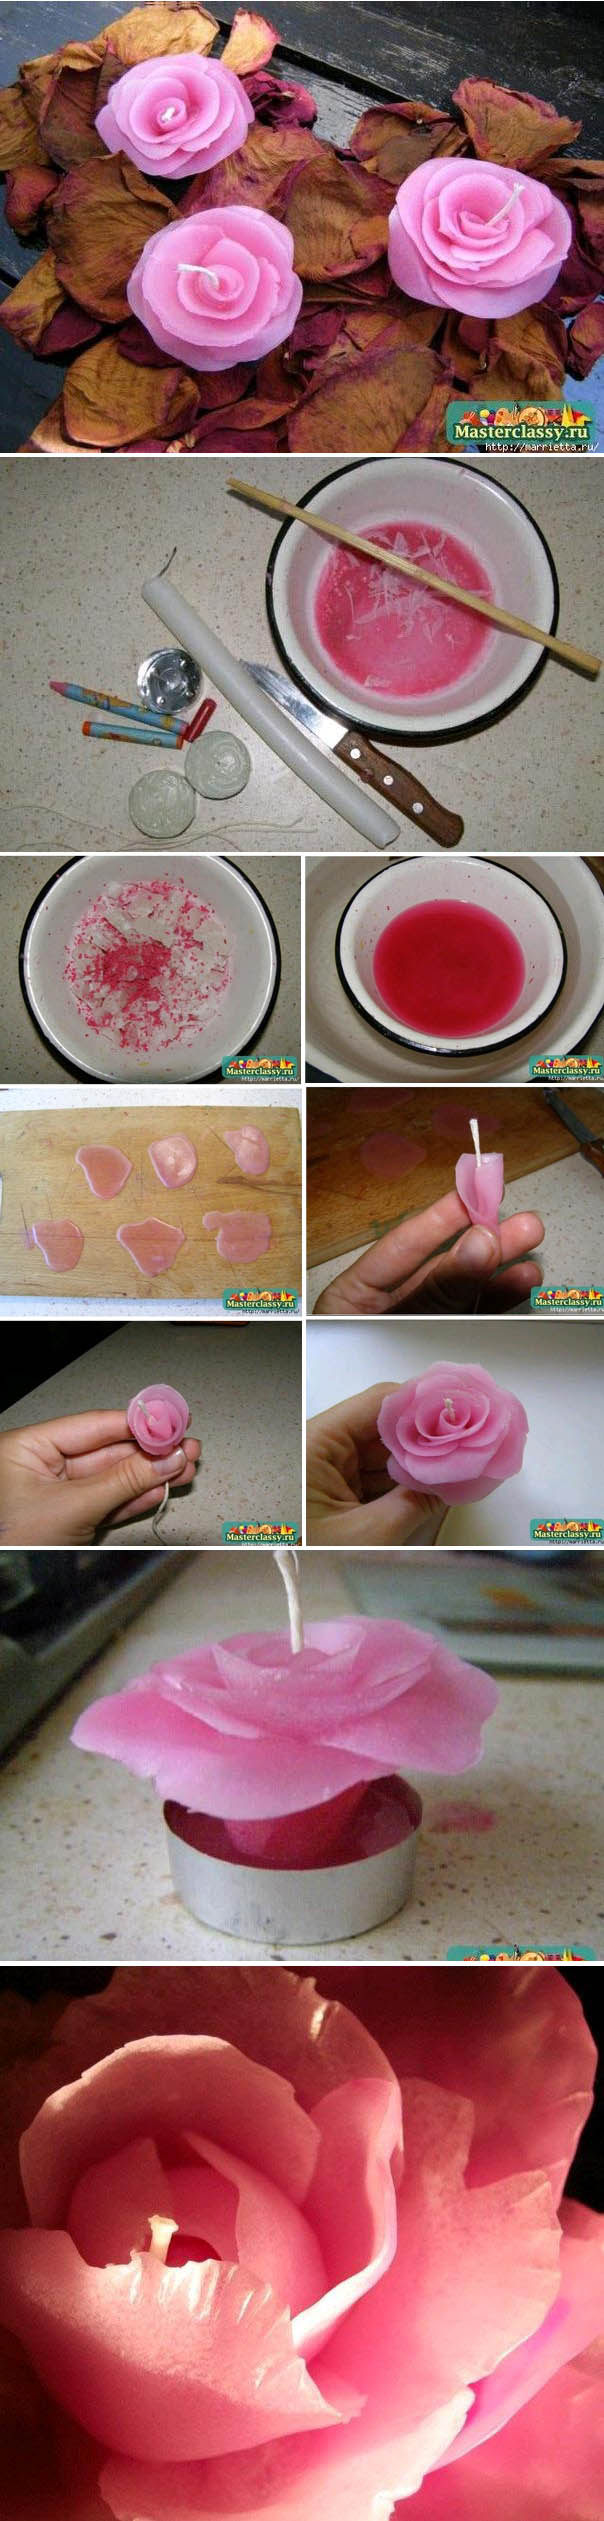 DIY a rose candle tutorial